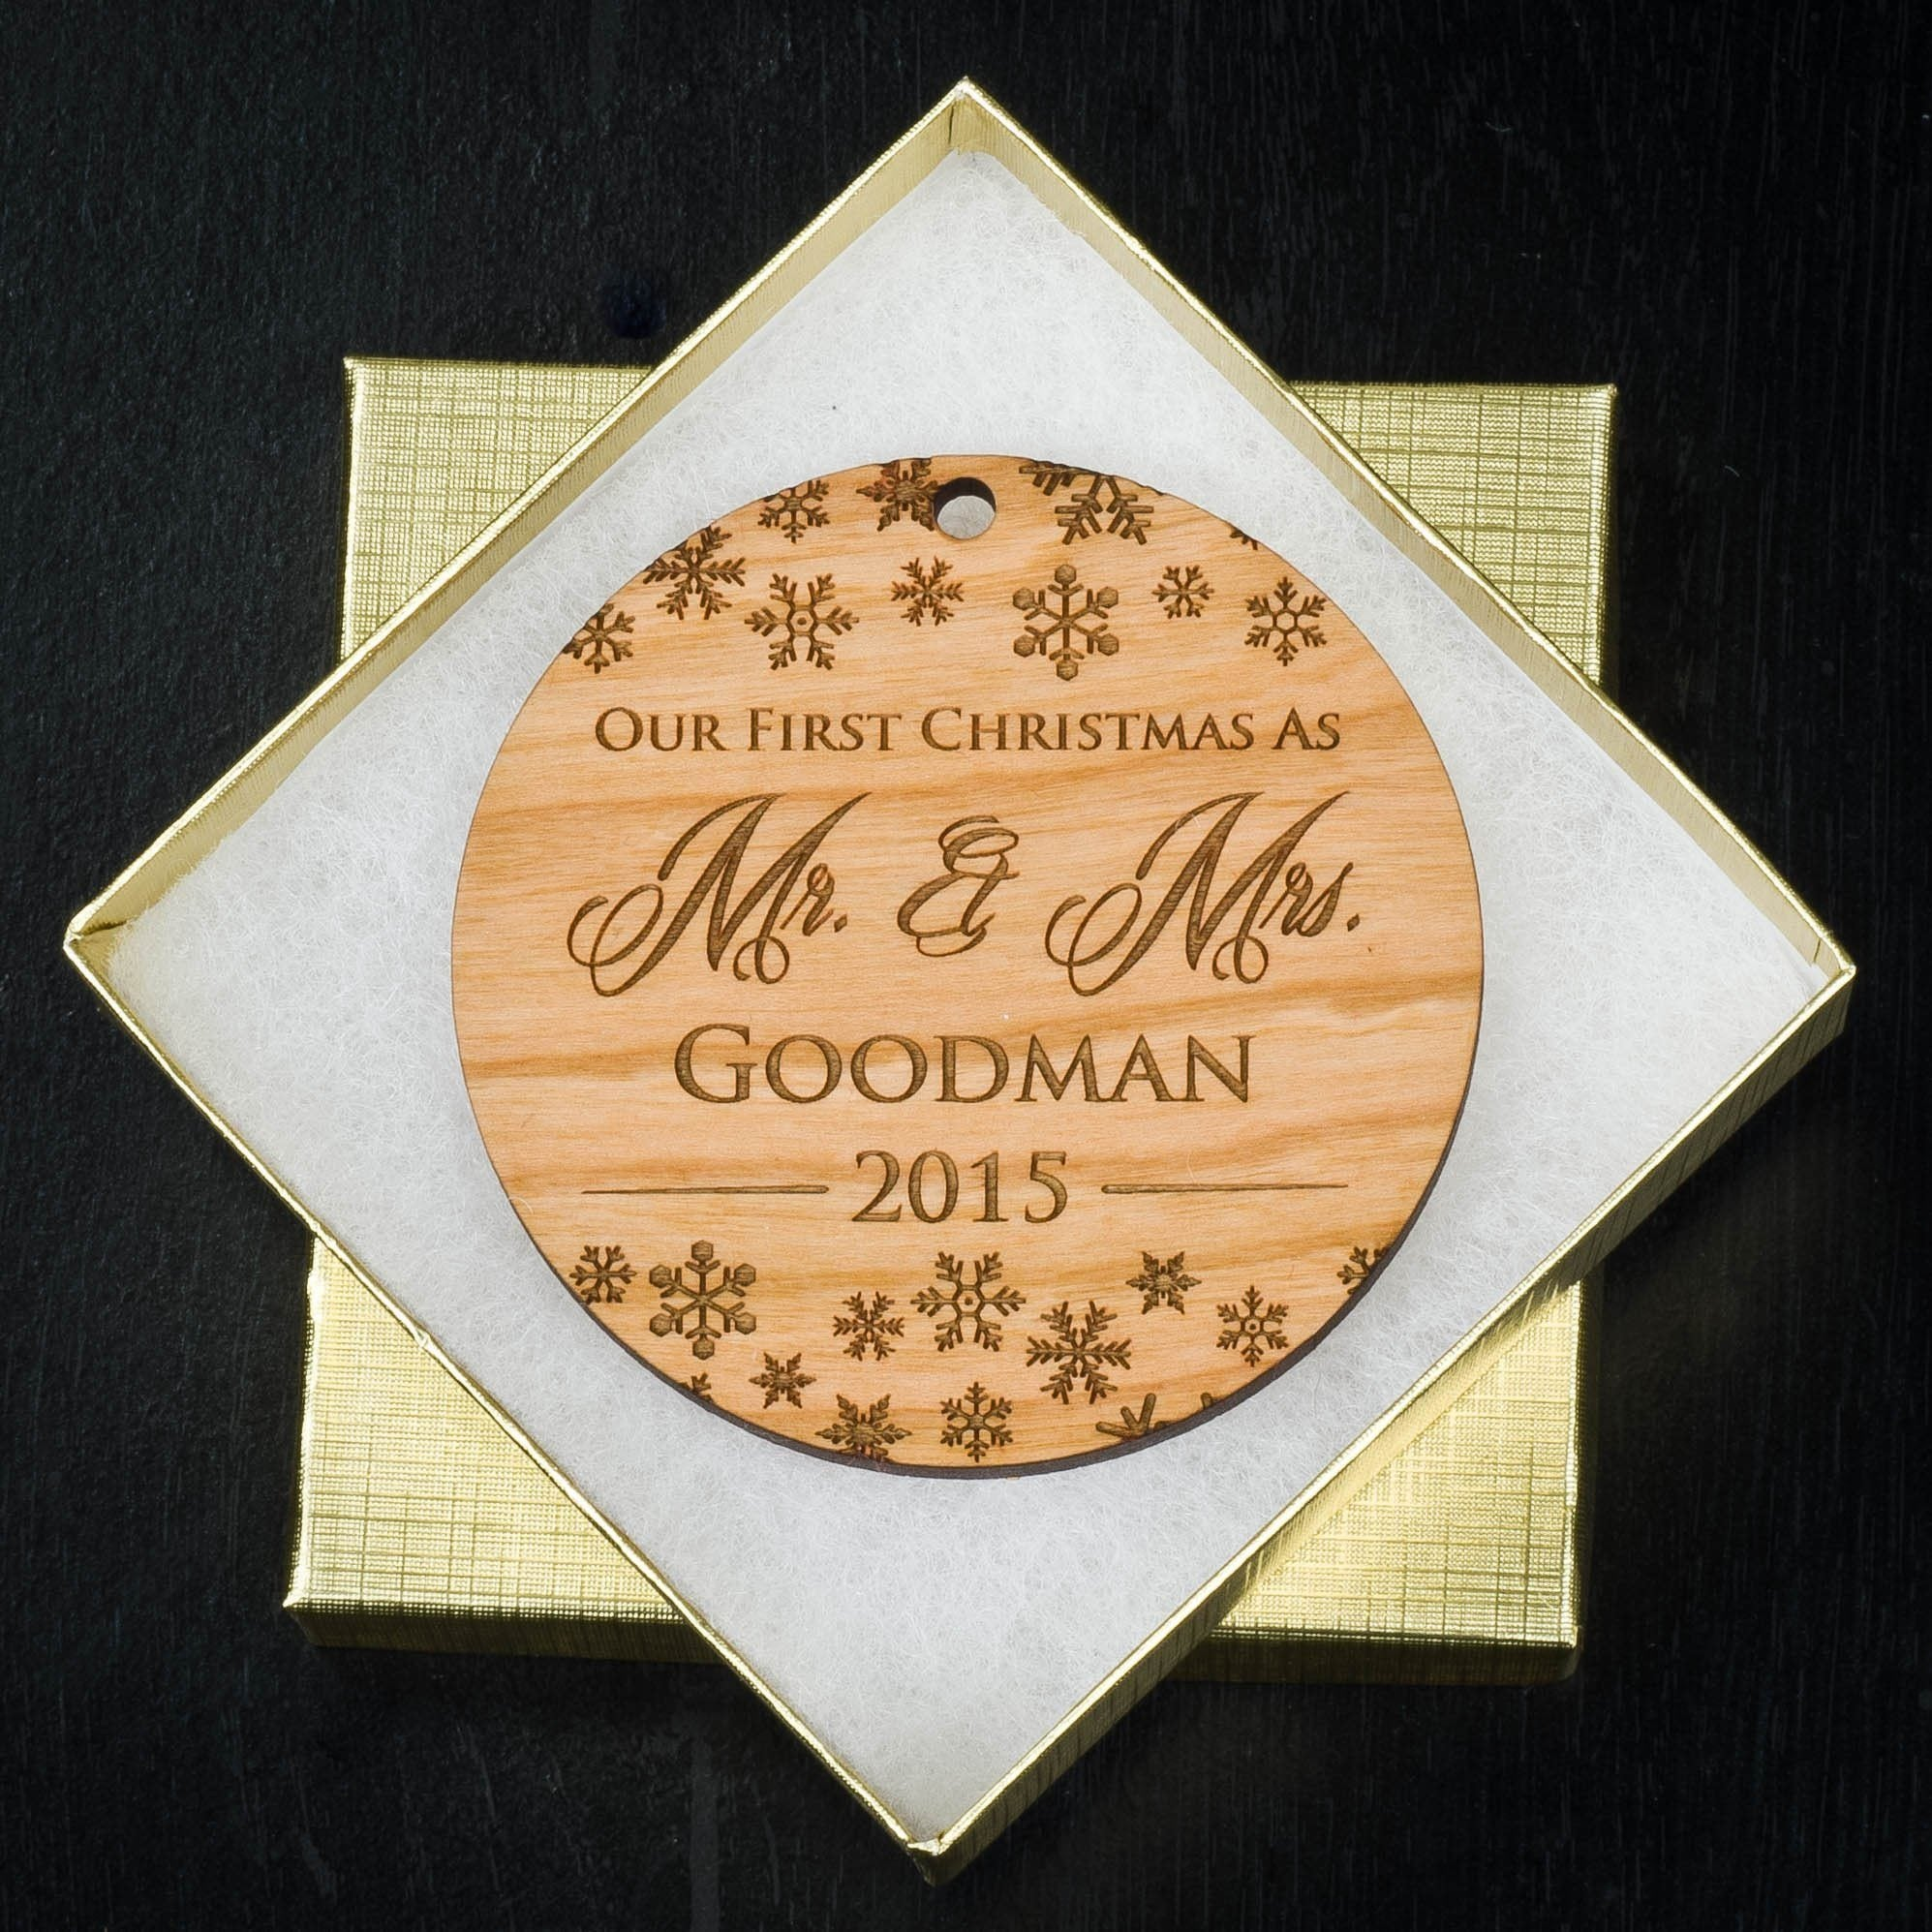 Our First Christmas Ornament  First Married Christmas Personalized Ornament   First Christmas Together Ornament  Custom Wood Ornament